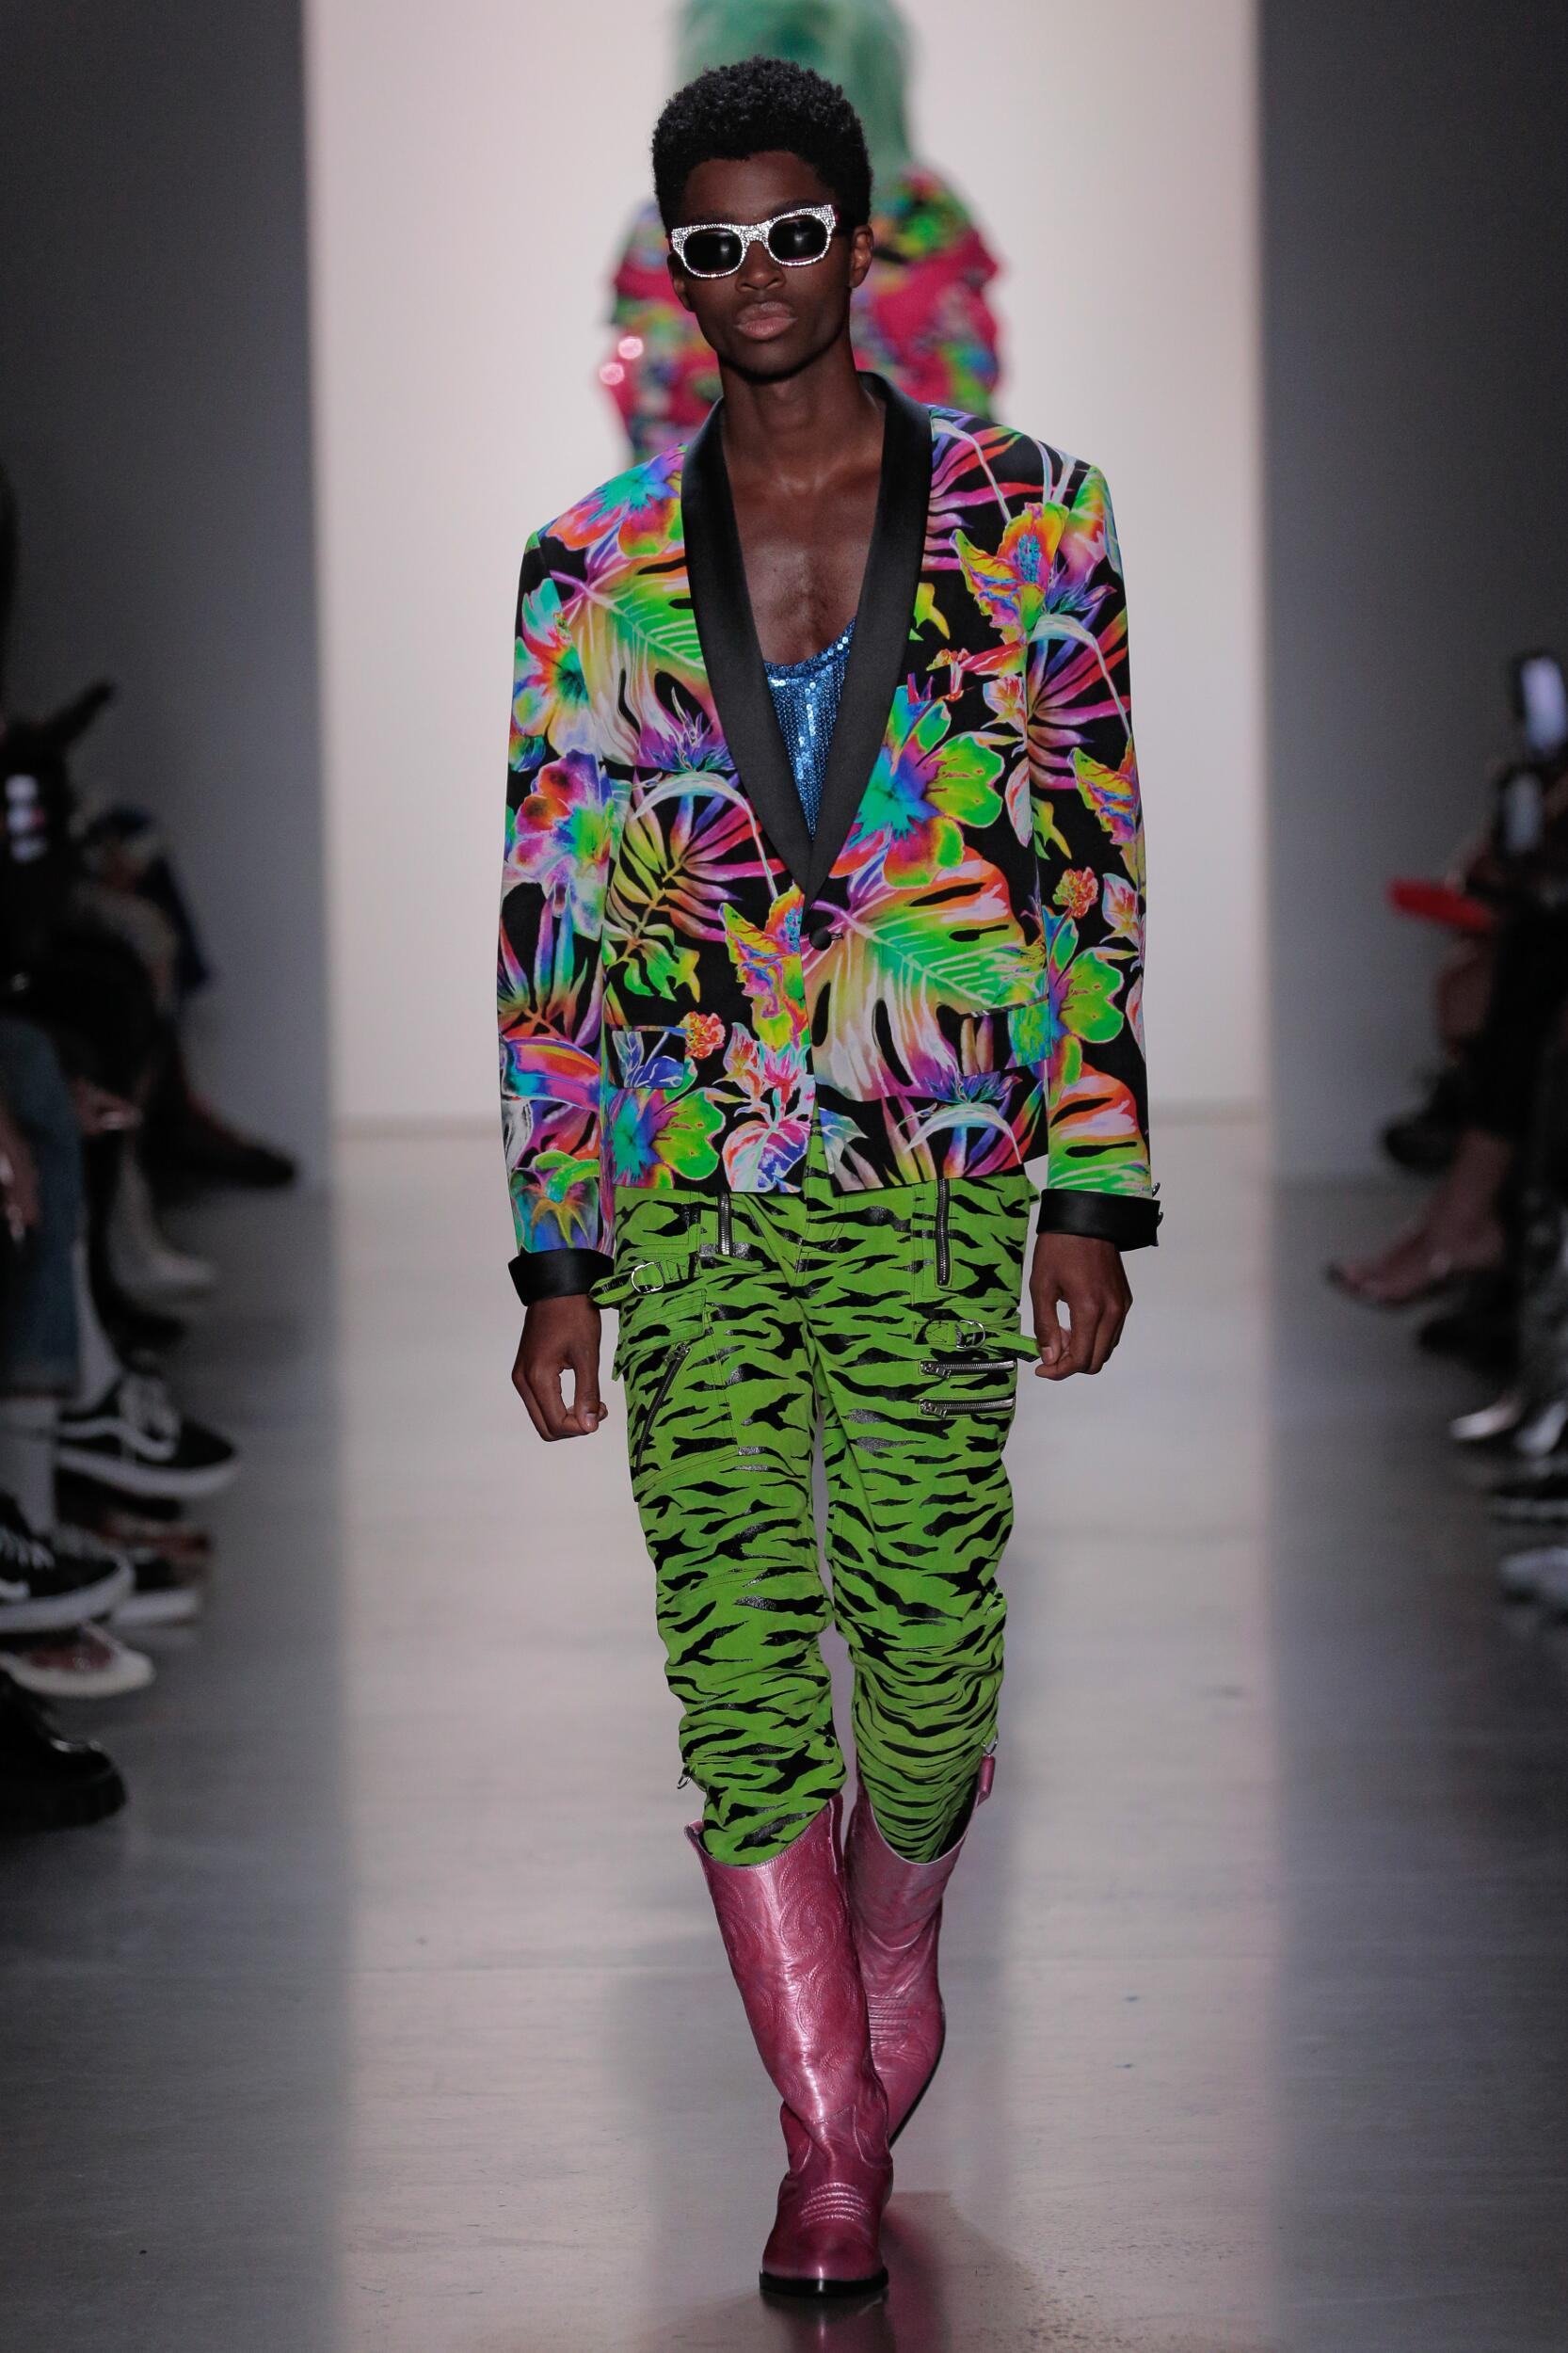 Jeremy Scott Summer 2020 Catwalk